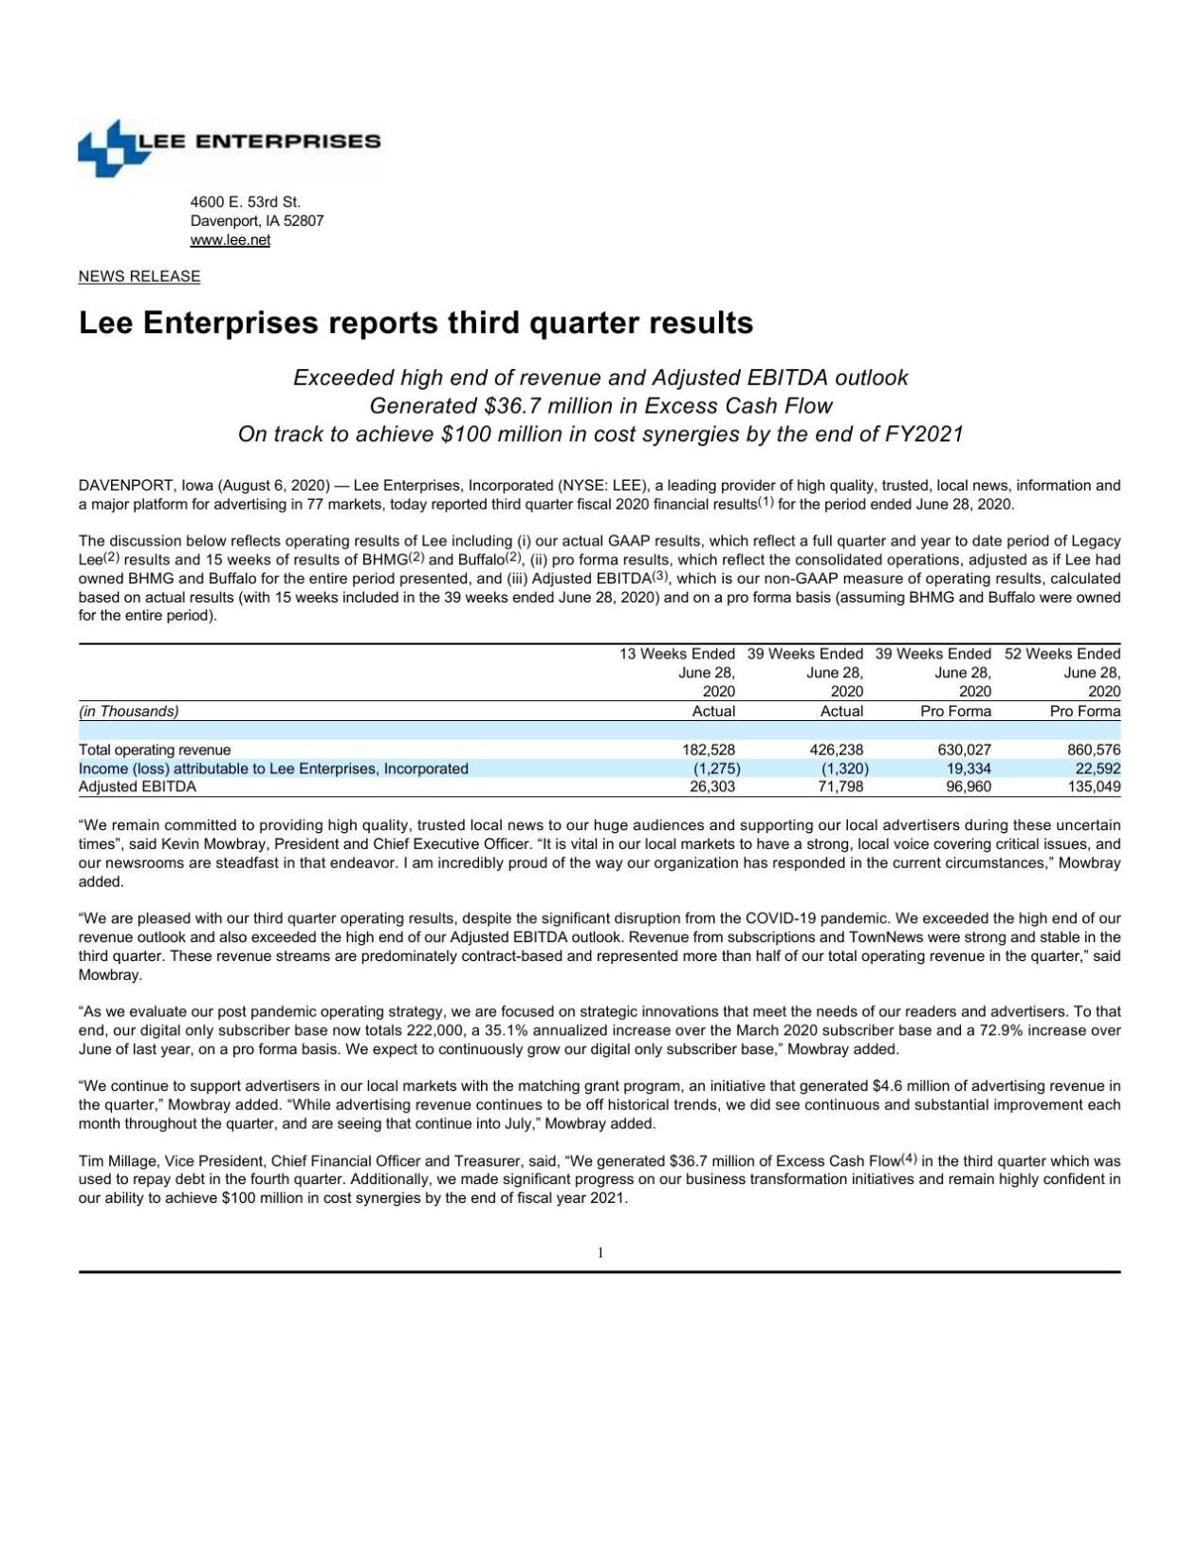 Lee earnings report